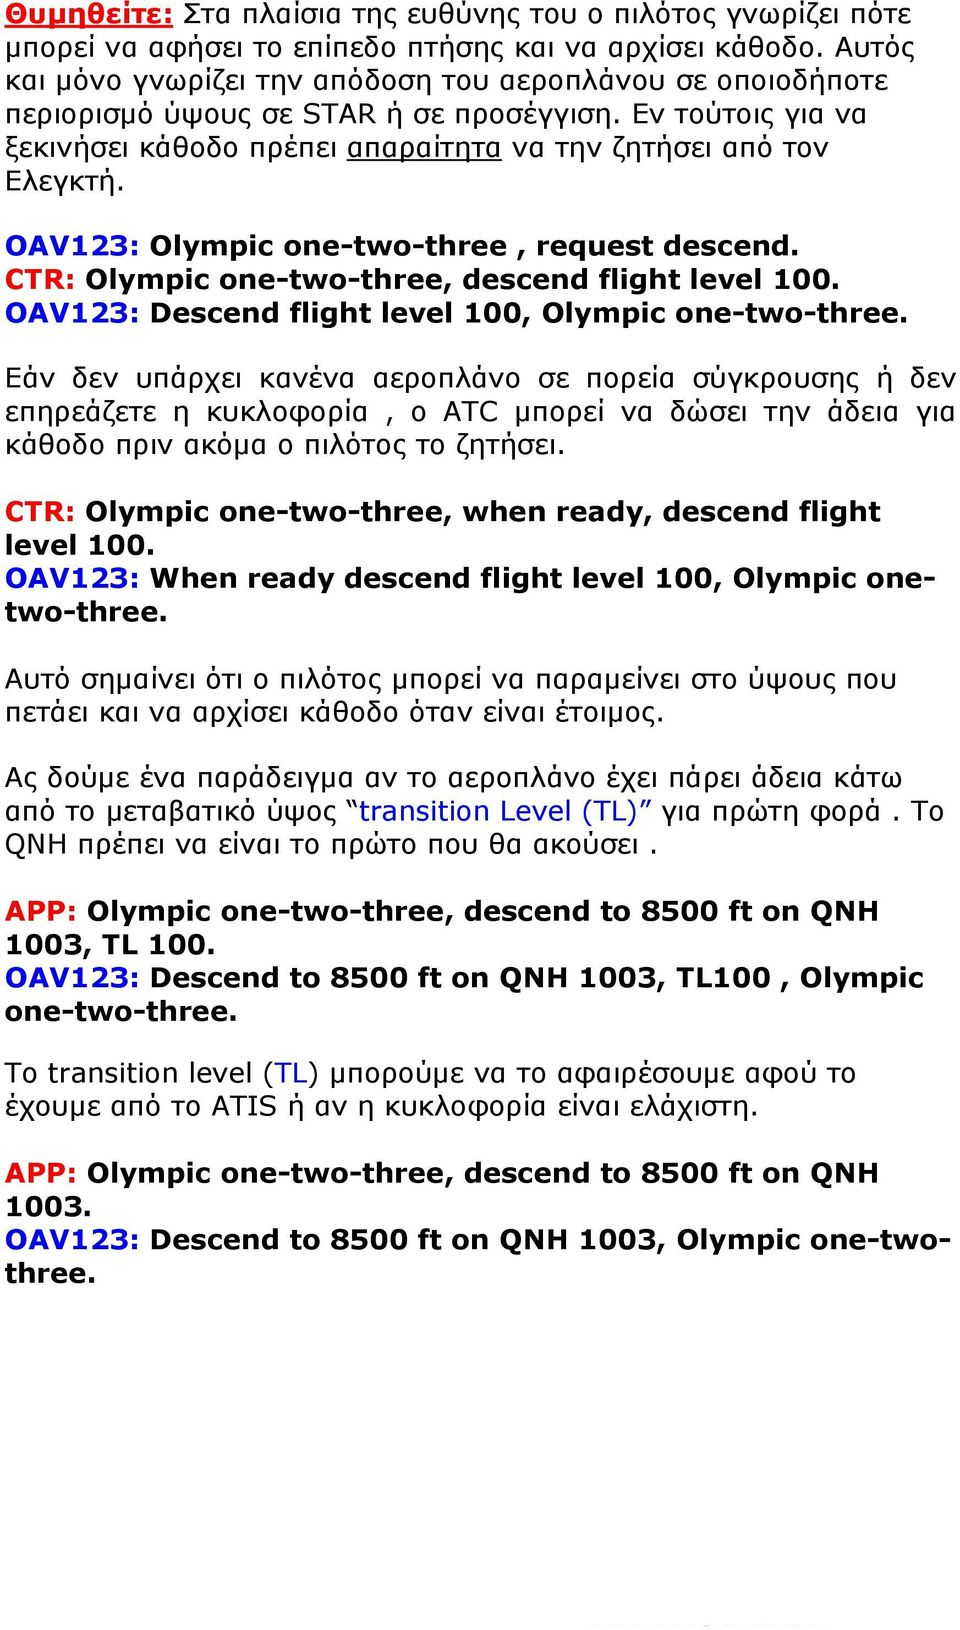 OAV123: Olympic one-two-three, request descend. CTR: Olympic one-two-three, descend flight level 100. OAV123: Descend flight level 100, Olympic one-two-three.